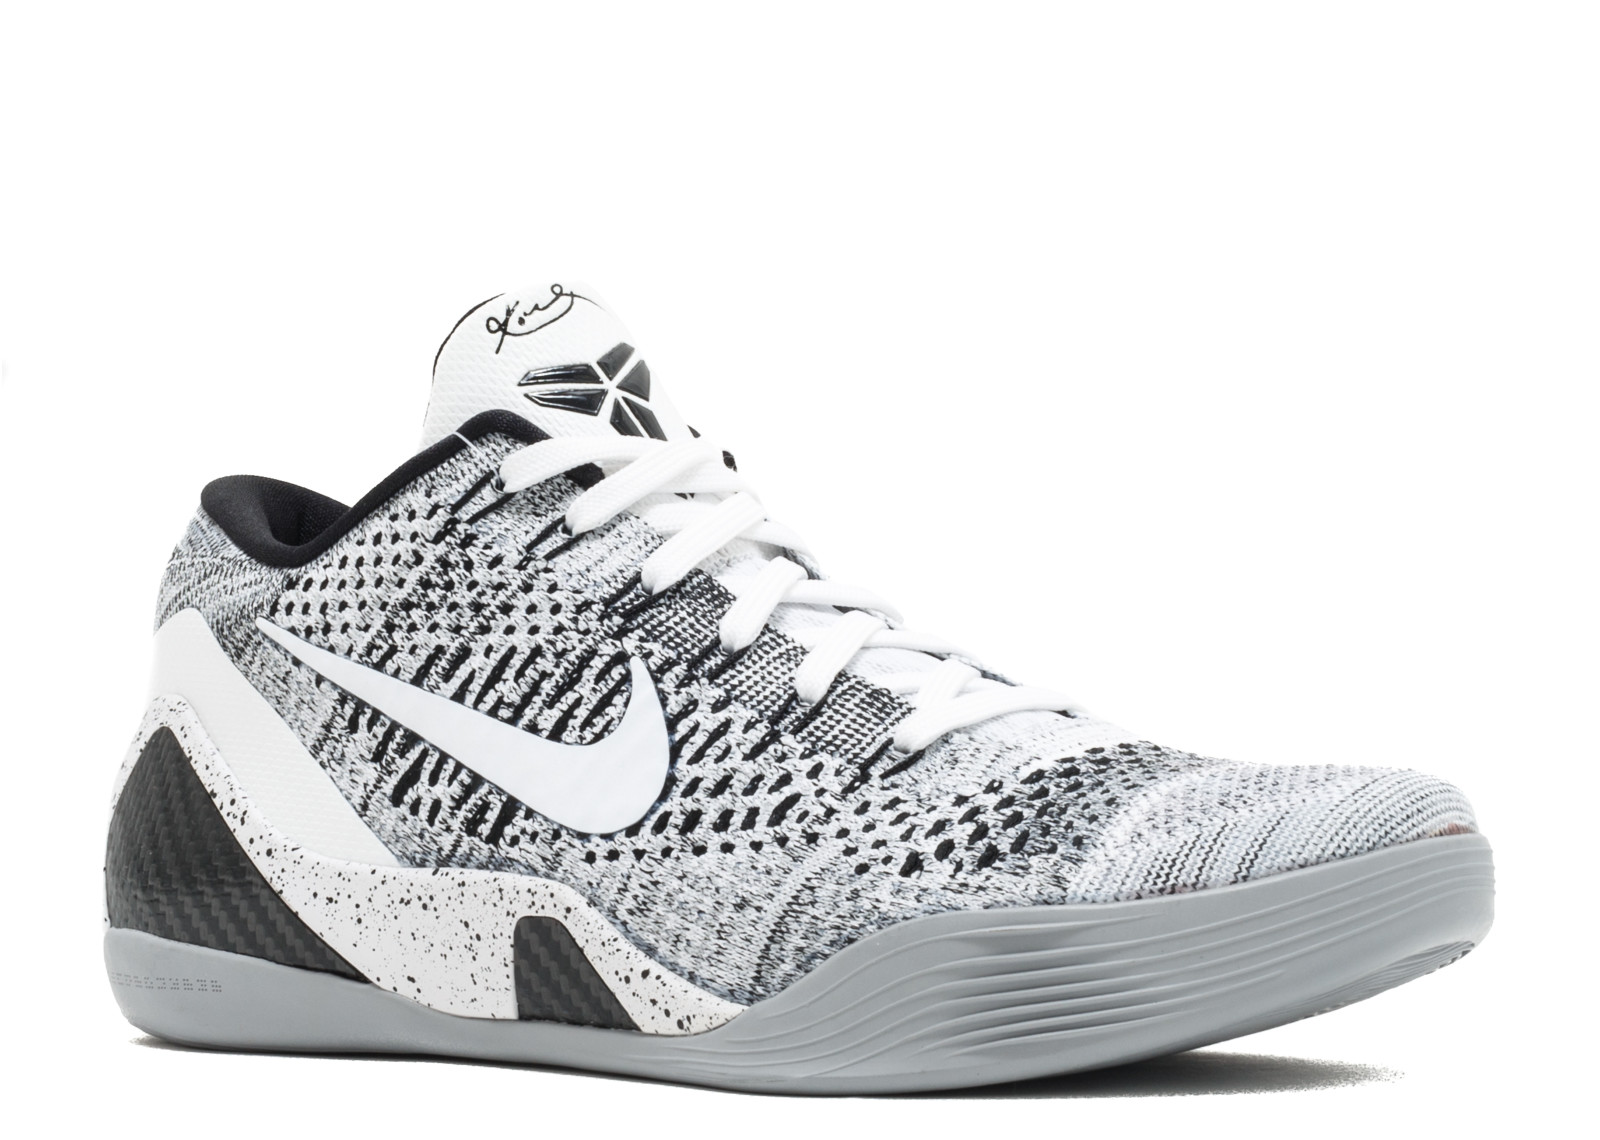 0e019f91c8df Kobe 9 Elite Low  Beethoven  - 639045-101 - Size 10